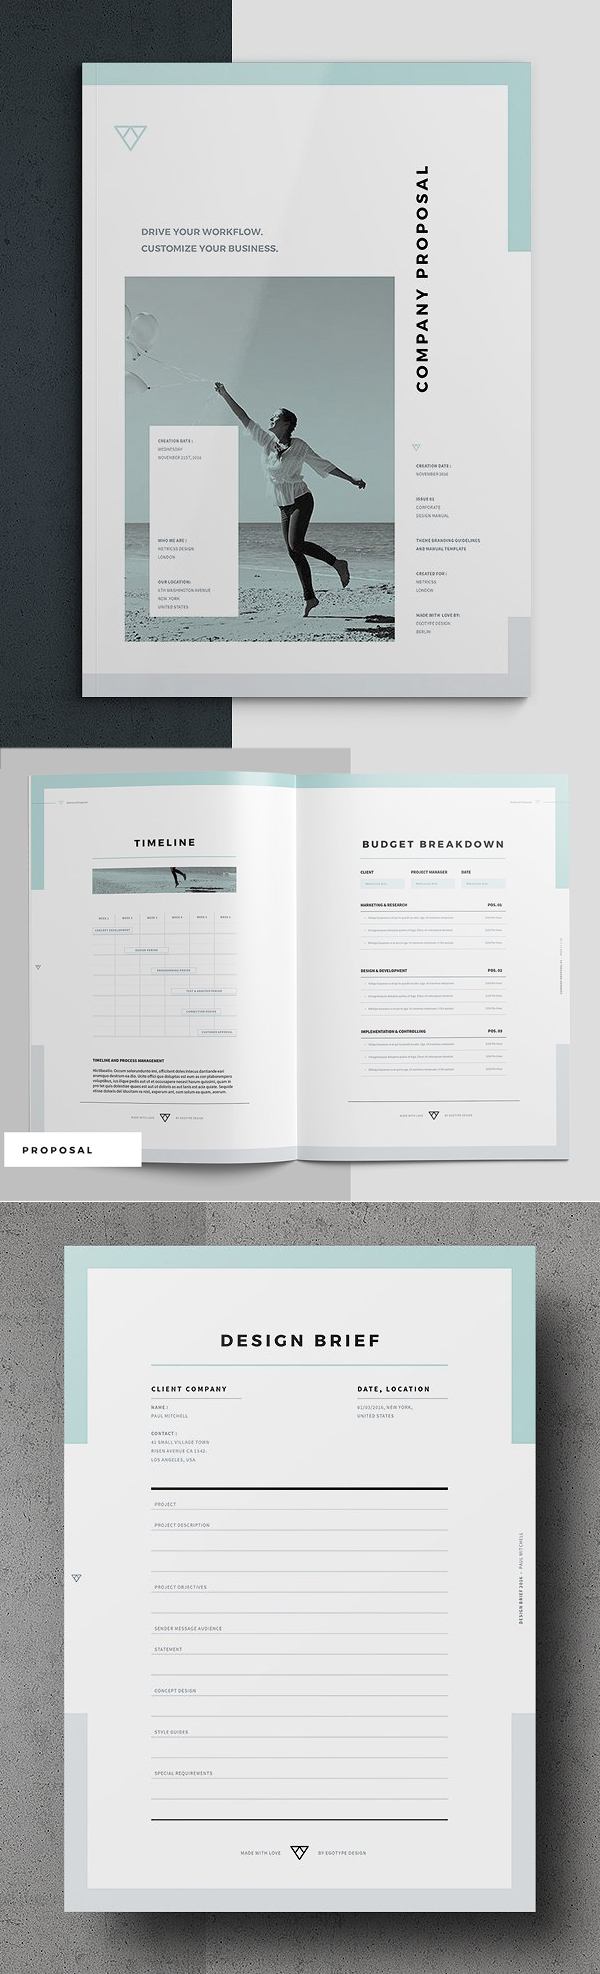 100 Professional Corporate Brochure Templates - 88